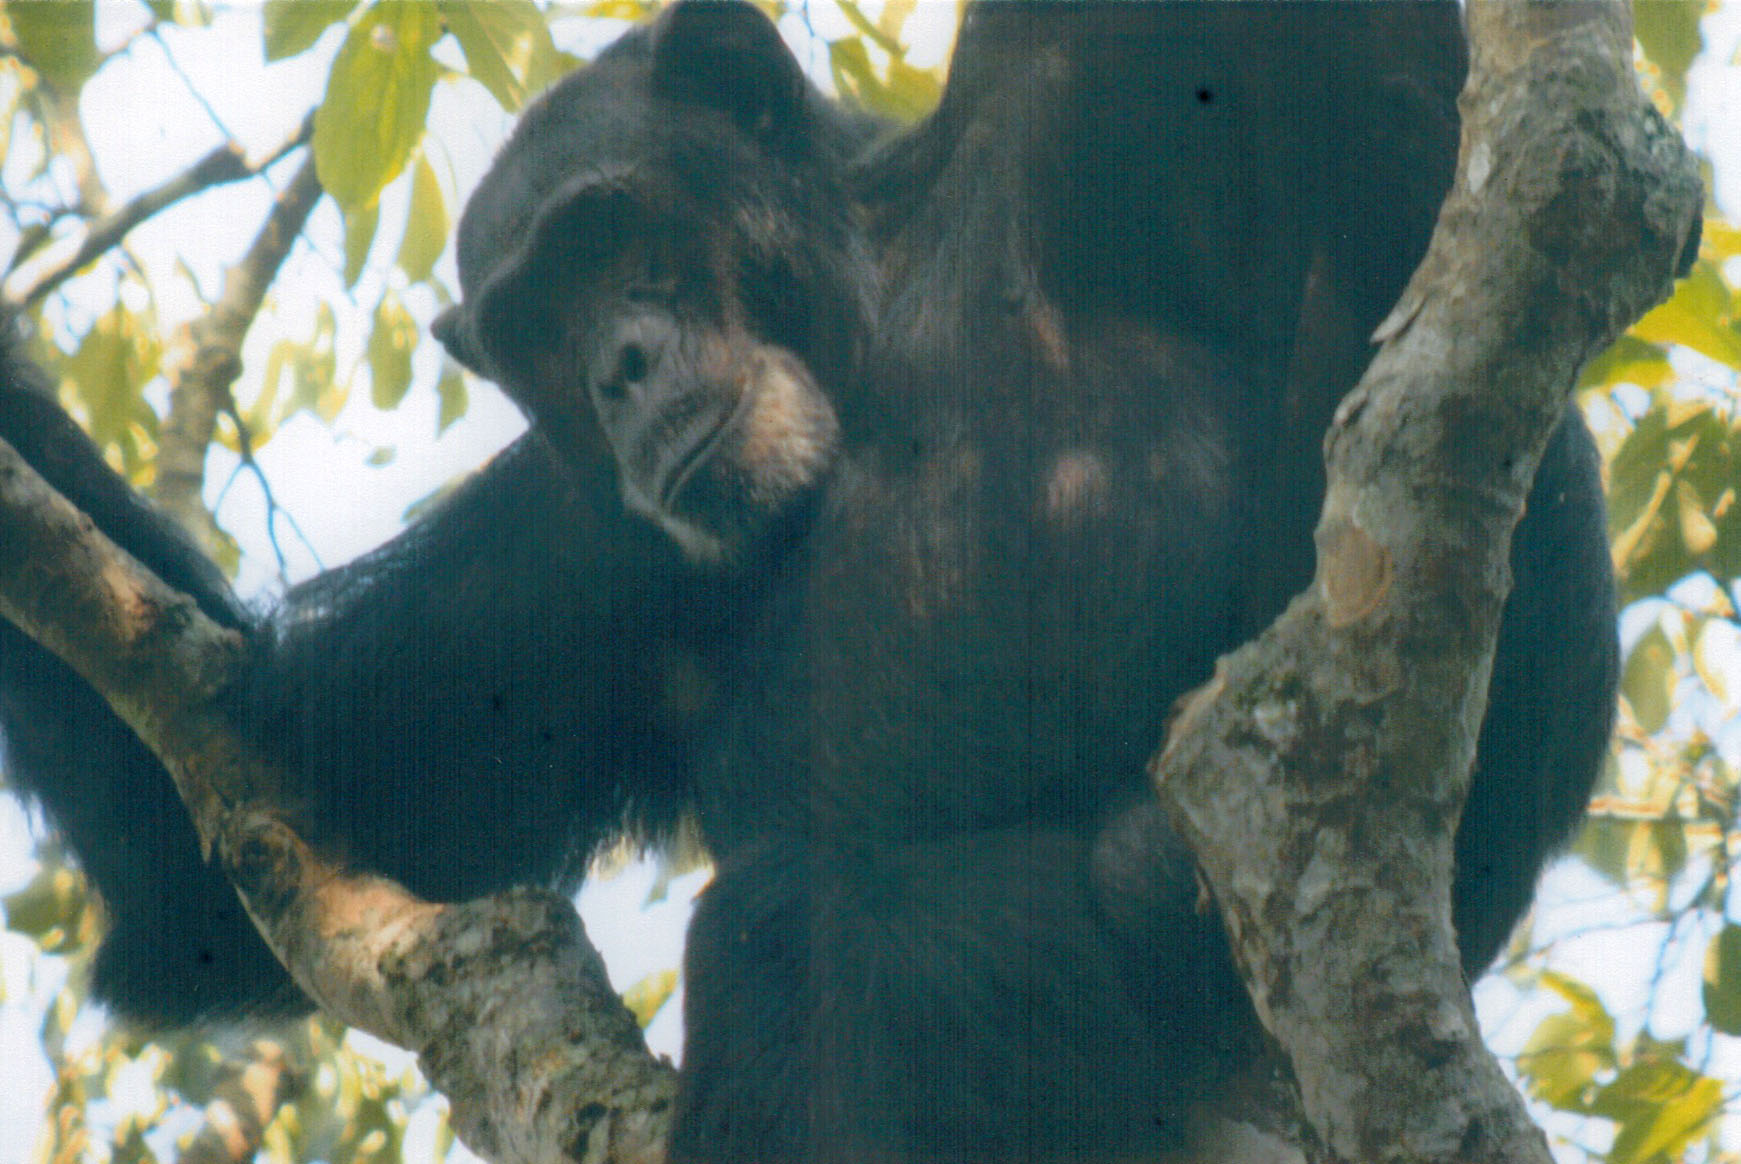 Male chimpanzee in Uganda's Kibale National Park